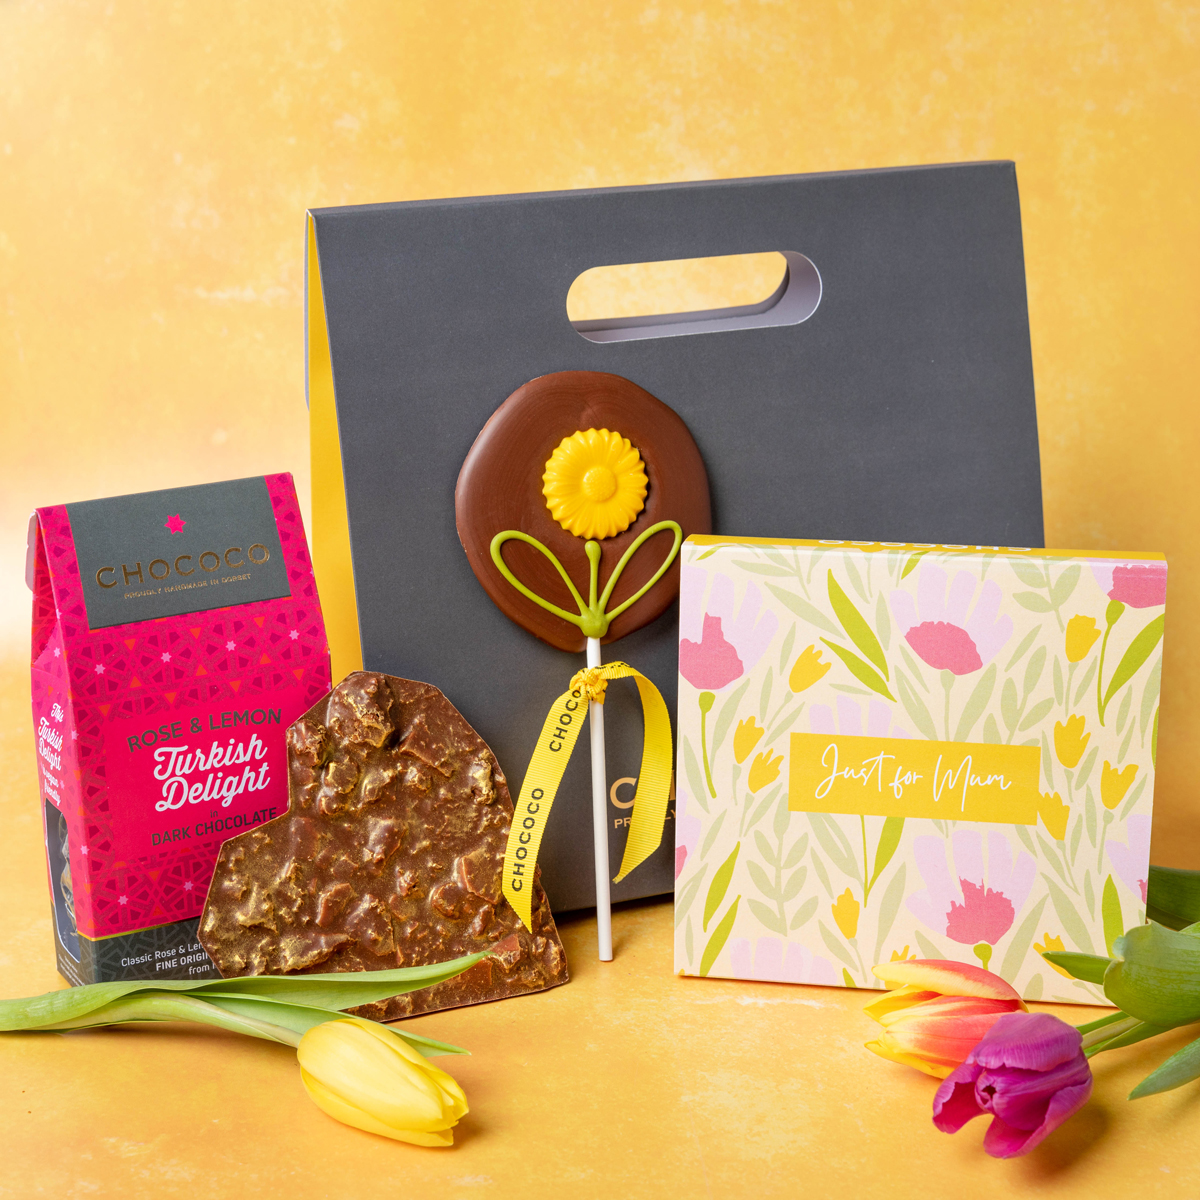 Mother's Day is on 14th March this year and we have chocolates to delight